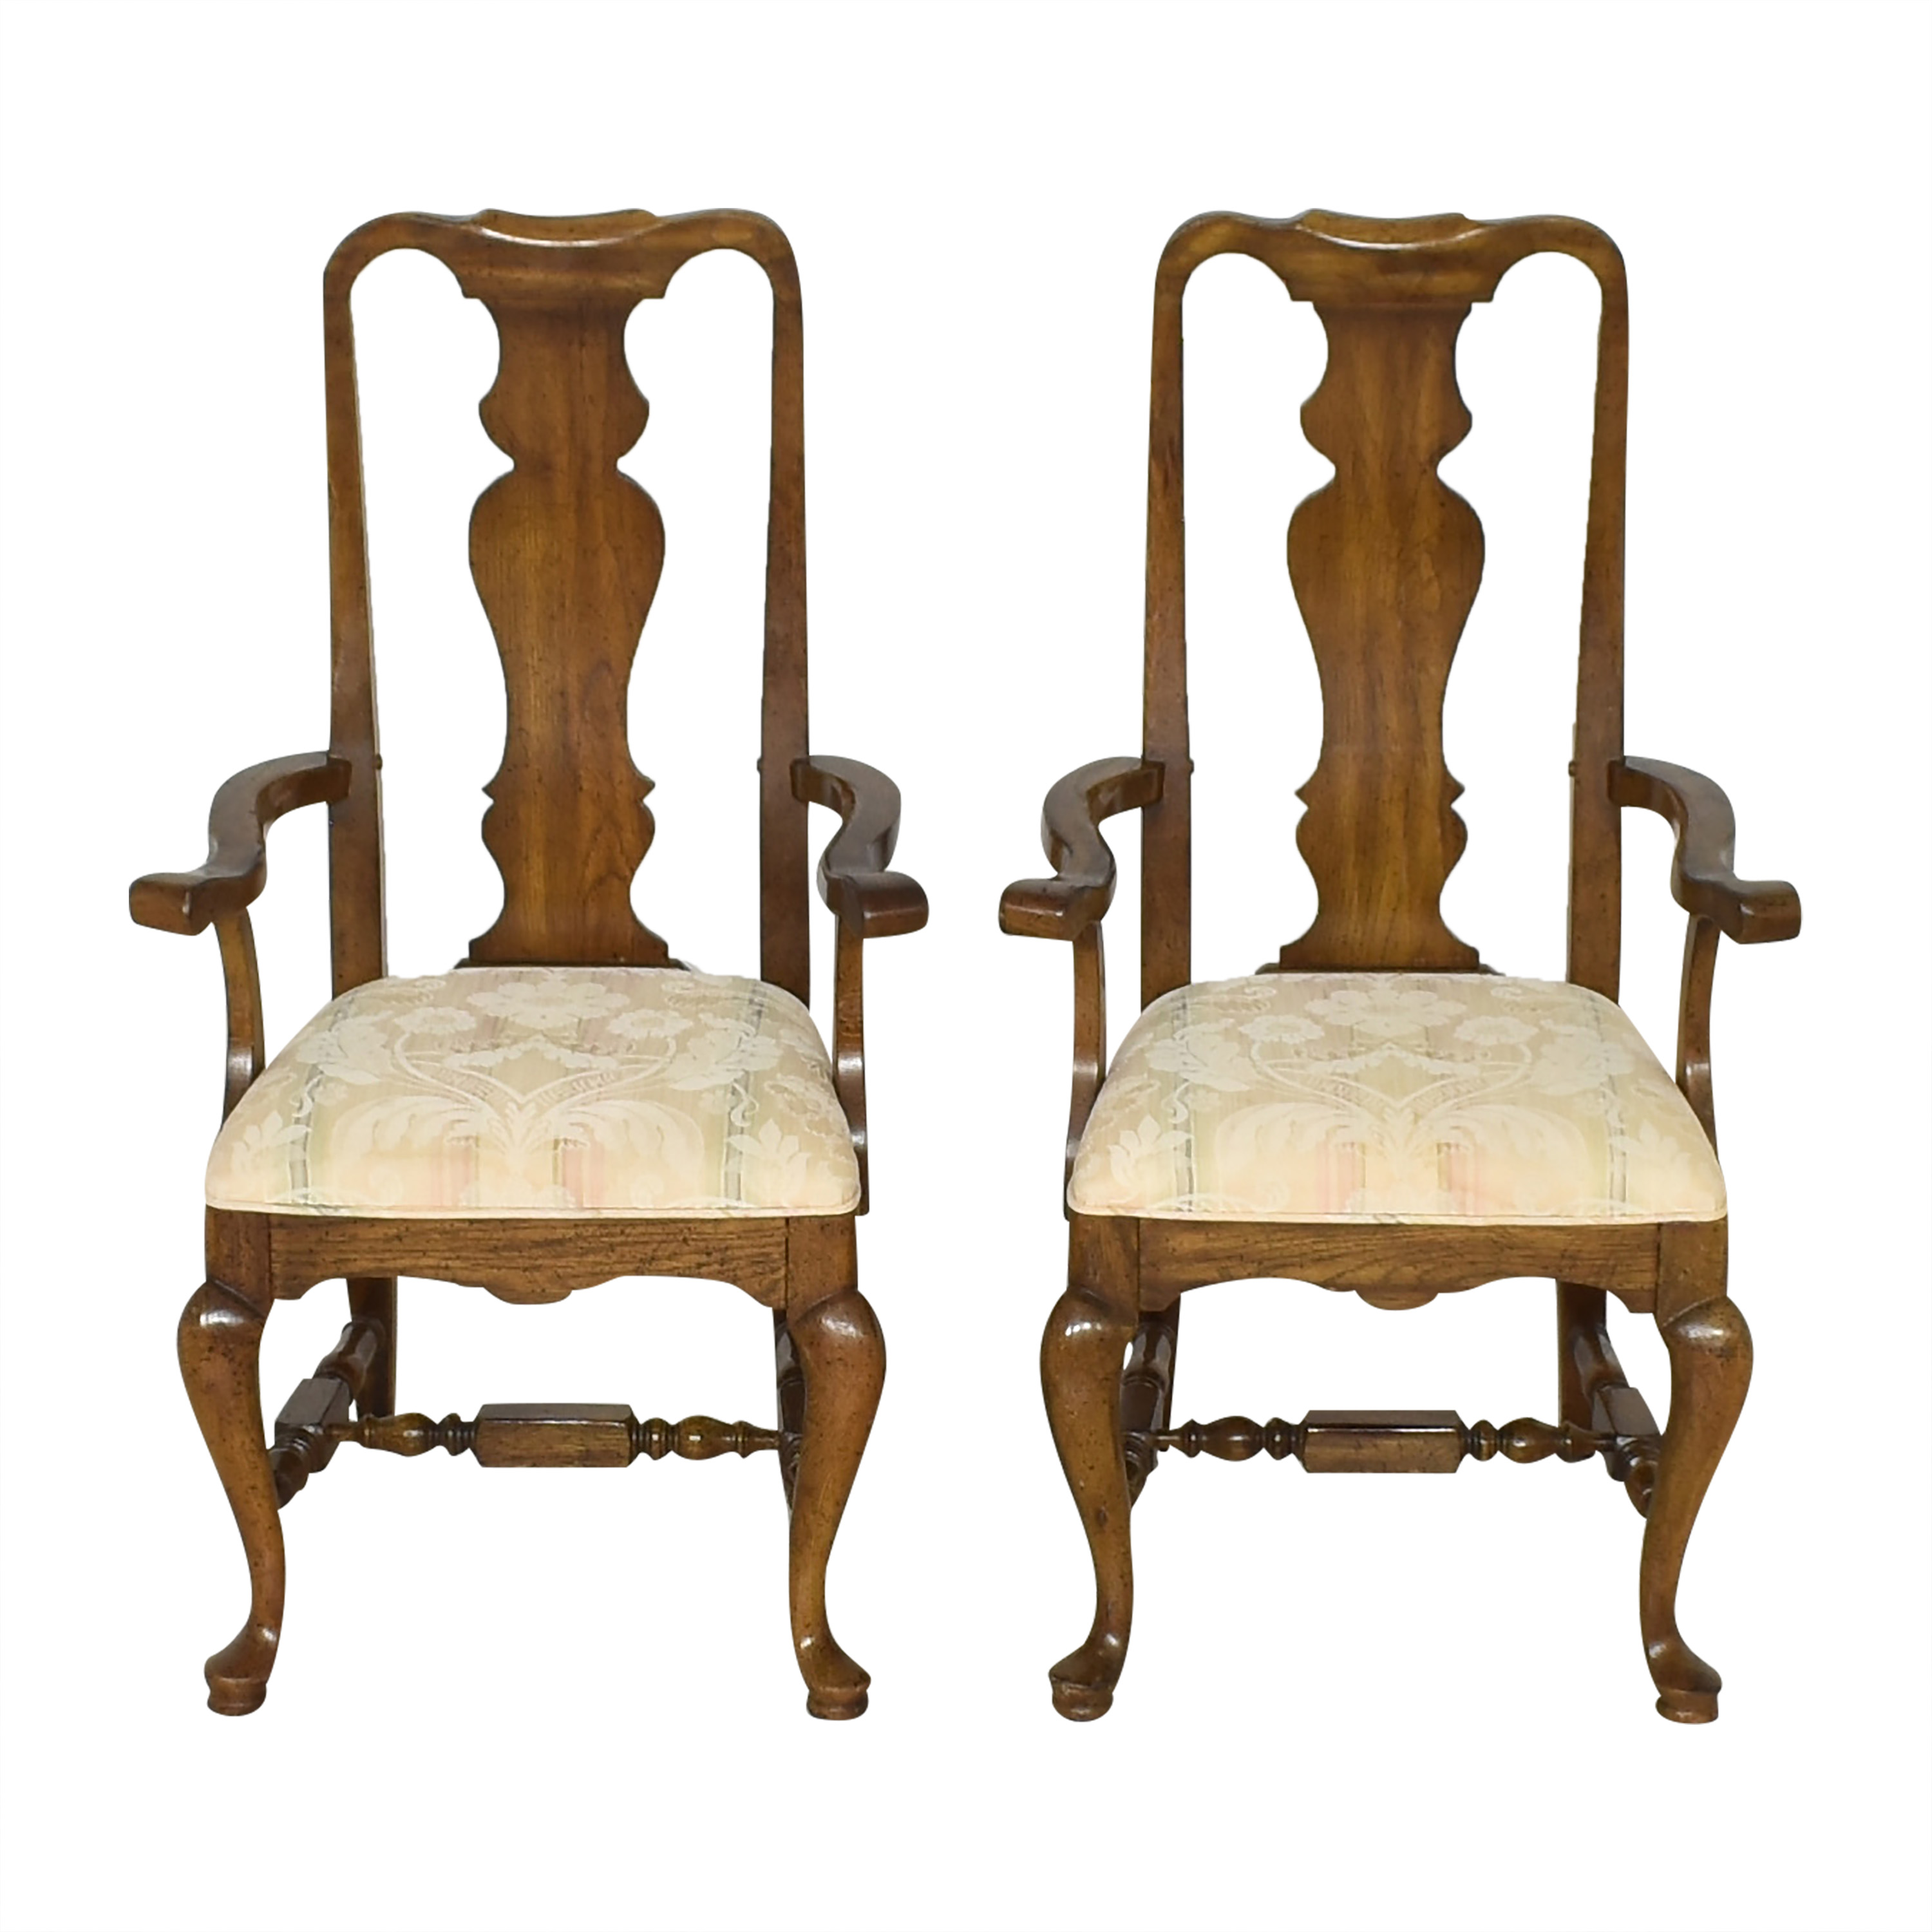 Thomasville Thomasville Dining Arm Chairs dimensions